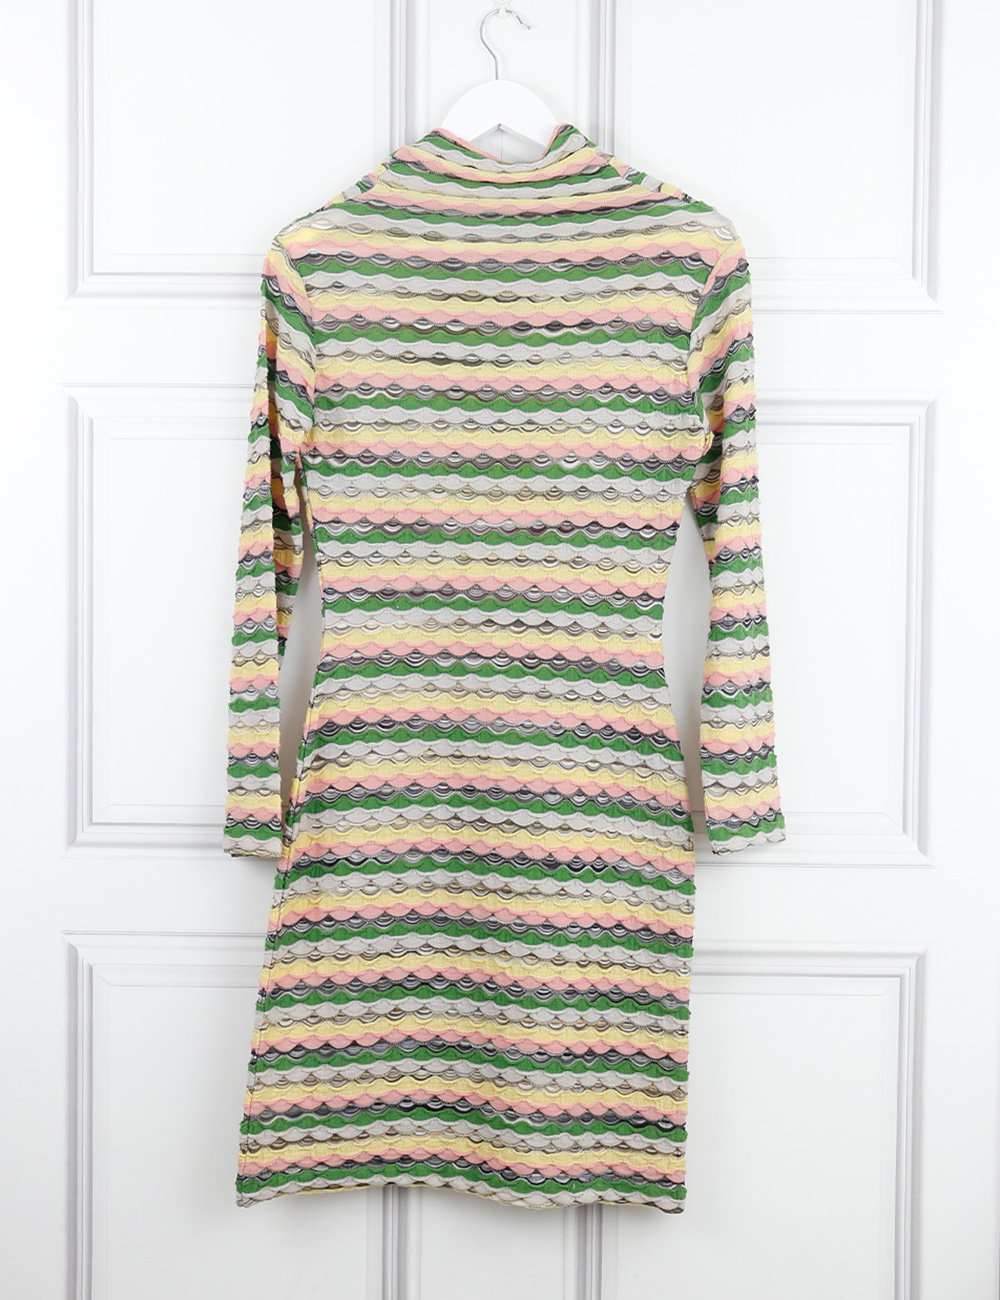 MISSONI SPORT CLOTHING 10UK-42IT-38FR / Multicolour MISSONI SPORT High-neck dress with signature print